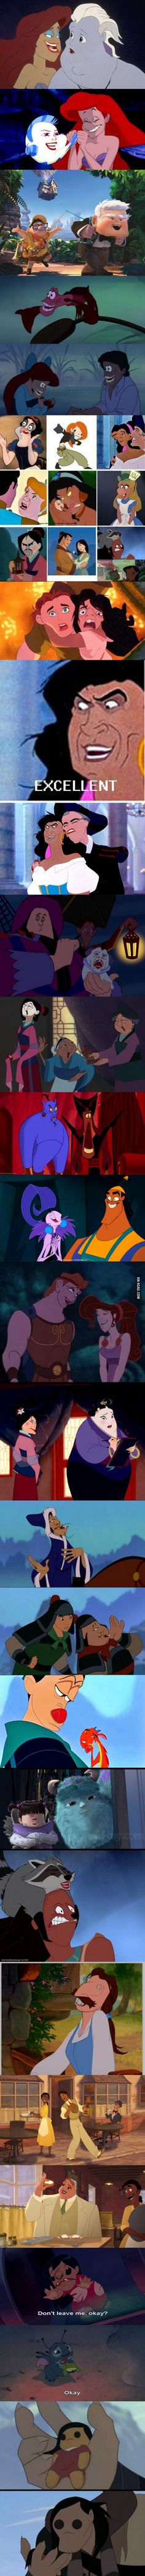 Funny pictures about Hilarious Disney Characters Face-Swaps. Oh, and cool pics about Hilarious Disney Characters Face-Swaps. Also, Hilarious Disney Characters Face-Swaps photos. Disney Pixar, Disney Memes, Disney And Dreamworks, Disney Characters, Funny Disney, Disney Crossovers, Disney Love, Disney Magic, Disney Stuff